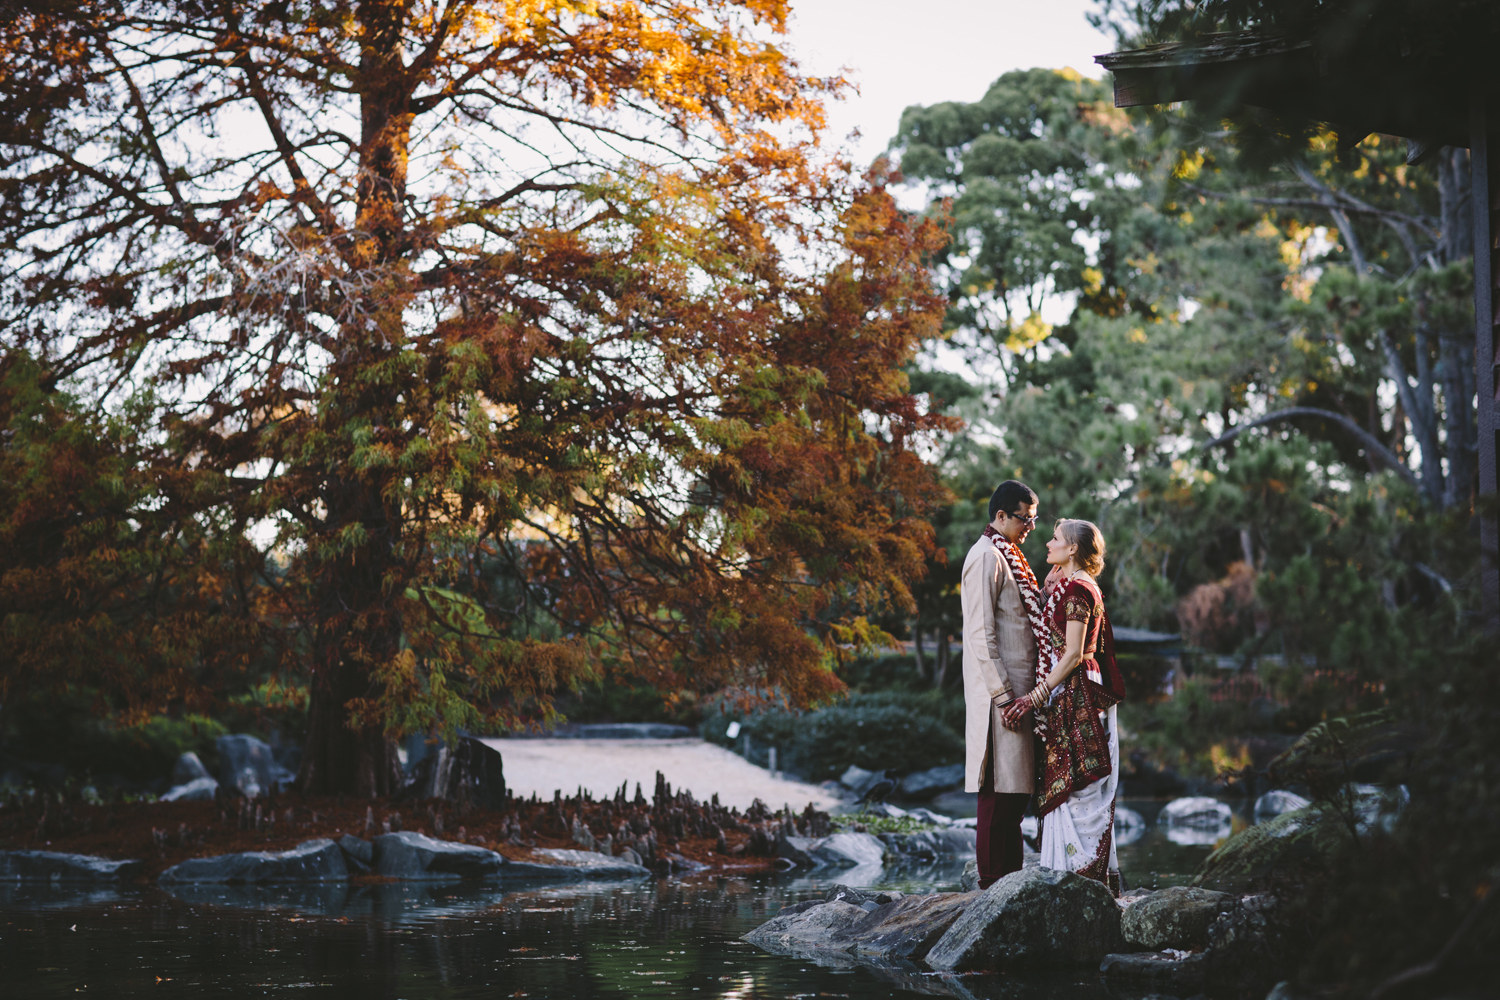 auburn.botanical_gardens_Concord_function_wedding-2.jpg